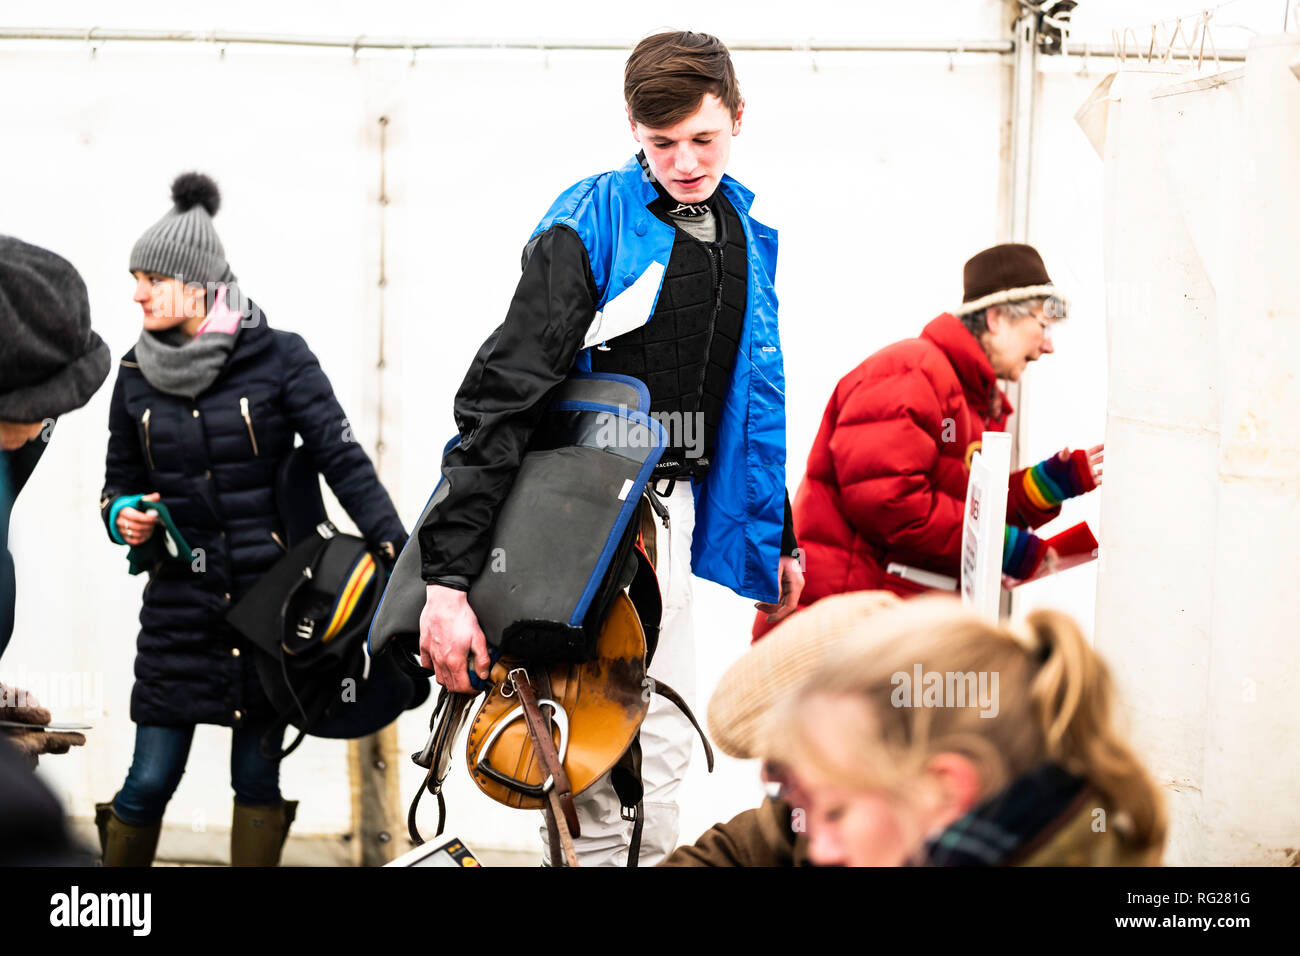 Friars Haugh, Kelso, Scottish Borders, UK. 27th January 2019. Strong winds were braved by jockeys and horses at the first Scottish Point to Point race meeting of the season, held at Friars Haugh in Kelso. To compete the horses owner must be a subscriber or farmer of a recognized pack of Hounds, each individual Hunt, in this case the Jedforest, hold their own respective meetings. Credit: Chris Strickland / Alamy Live News - Stock Image